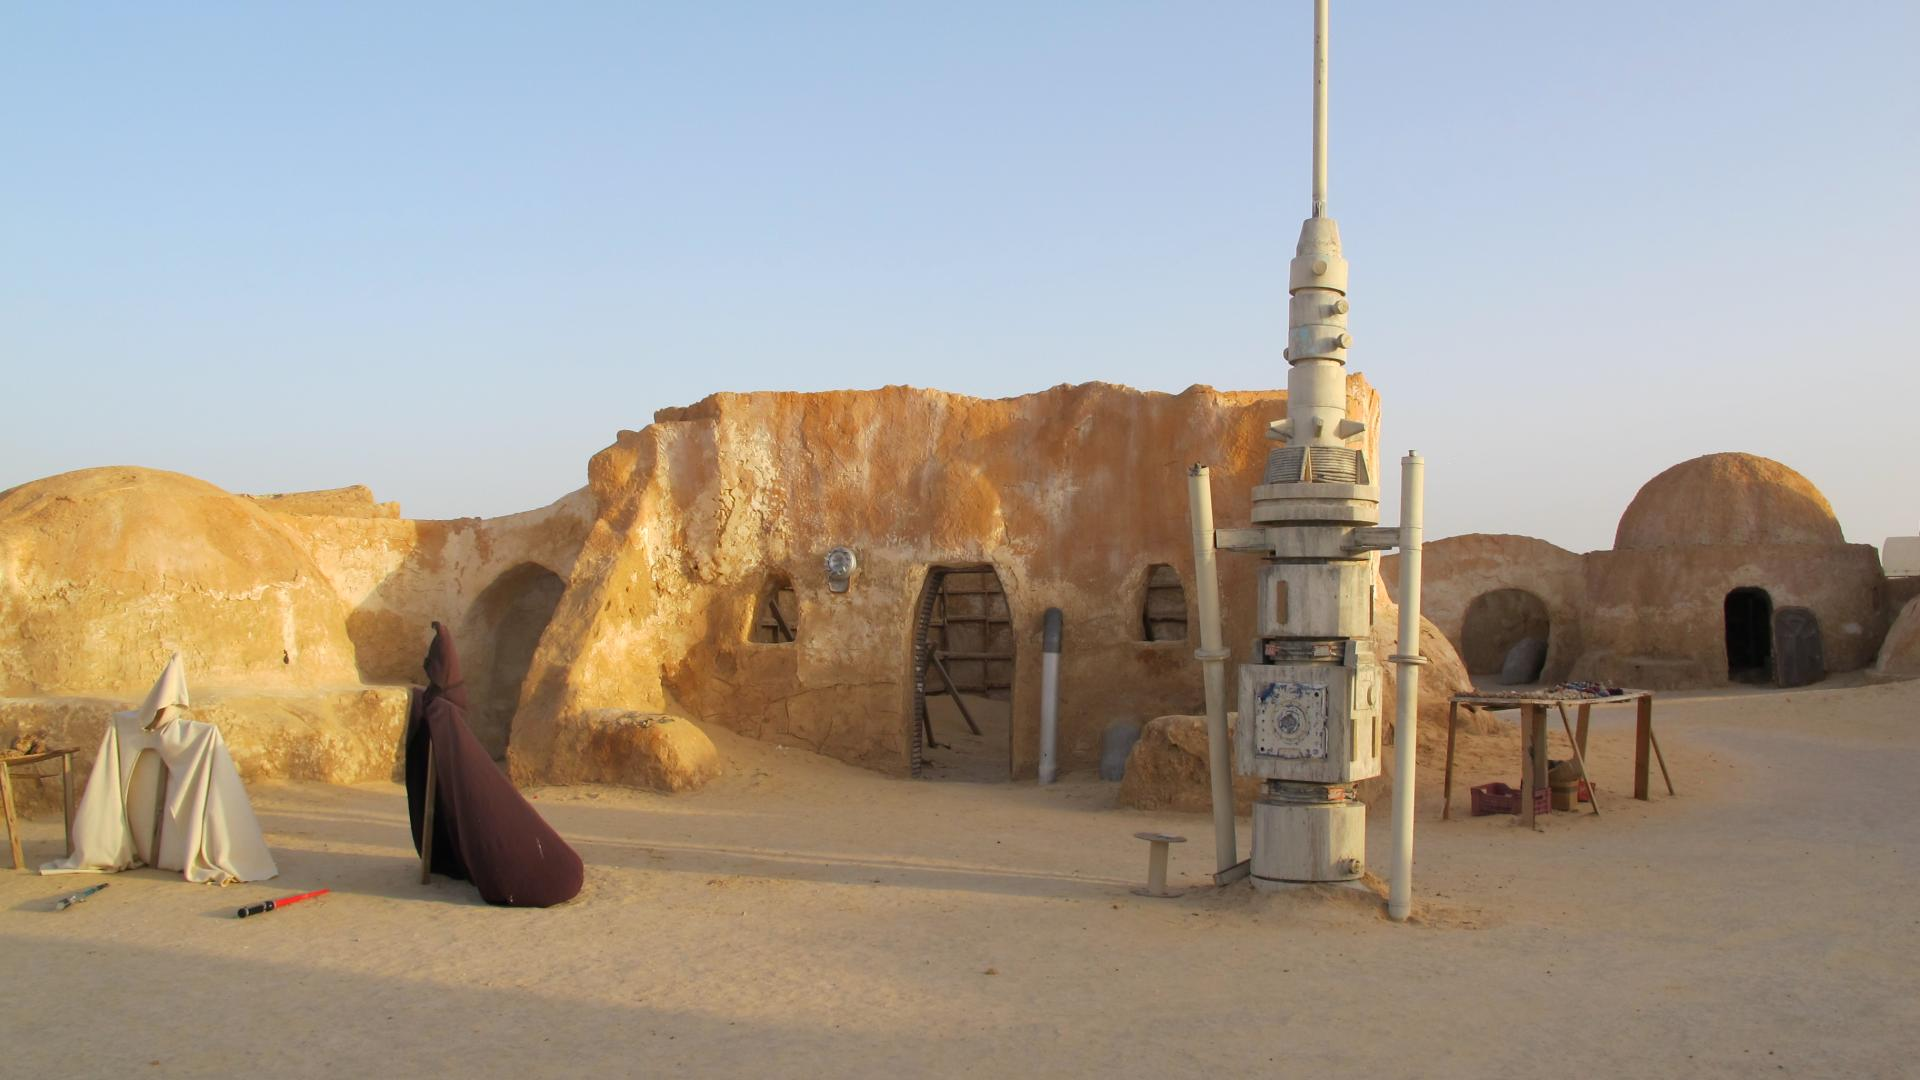 Sad Love Quotes Wallpaper For Mobile Download Tatooine Wallpaper Gallery